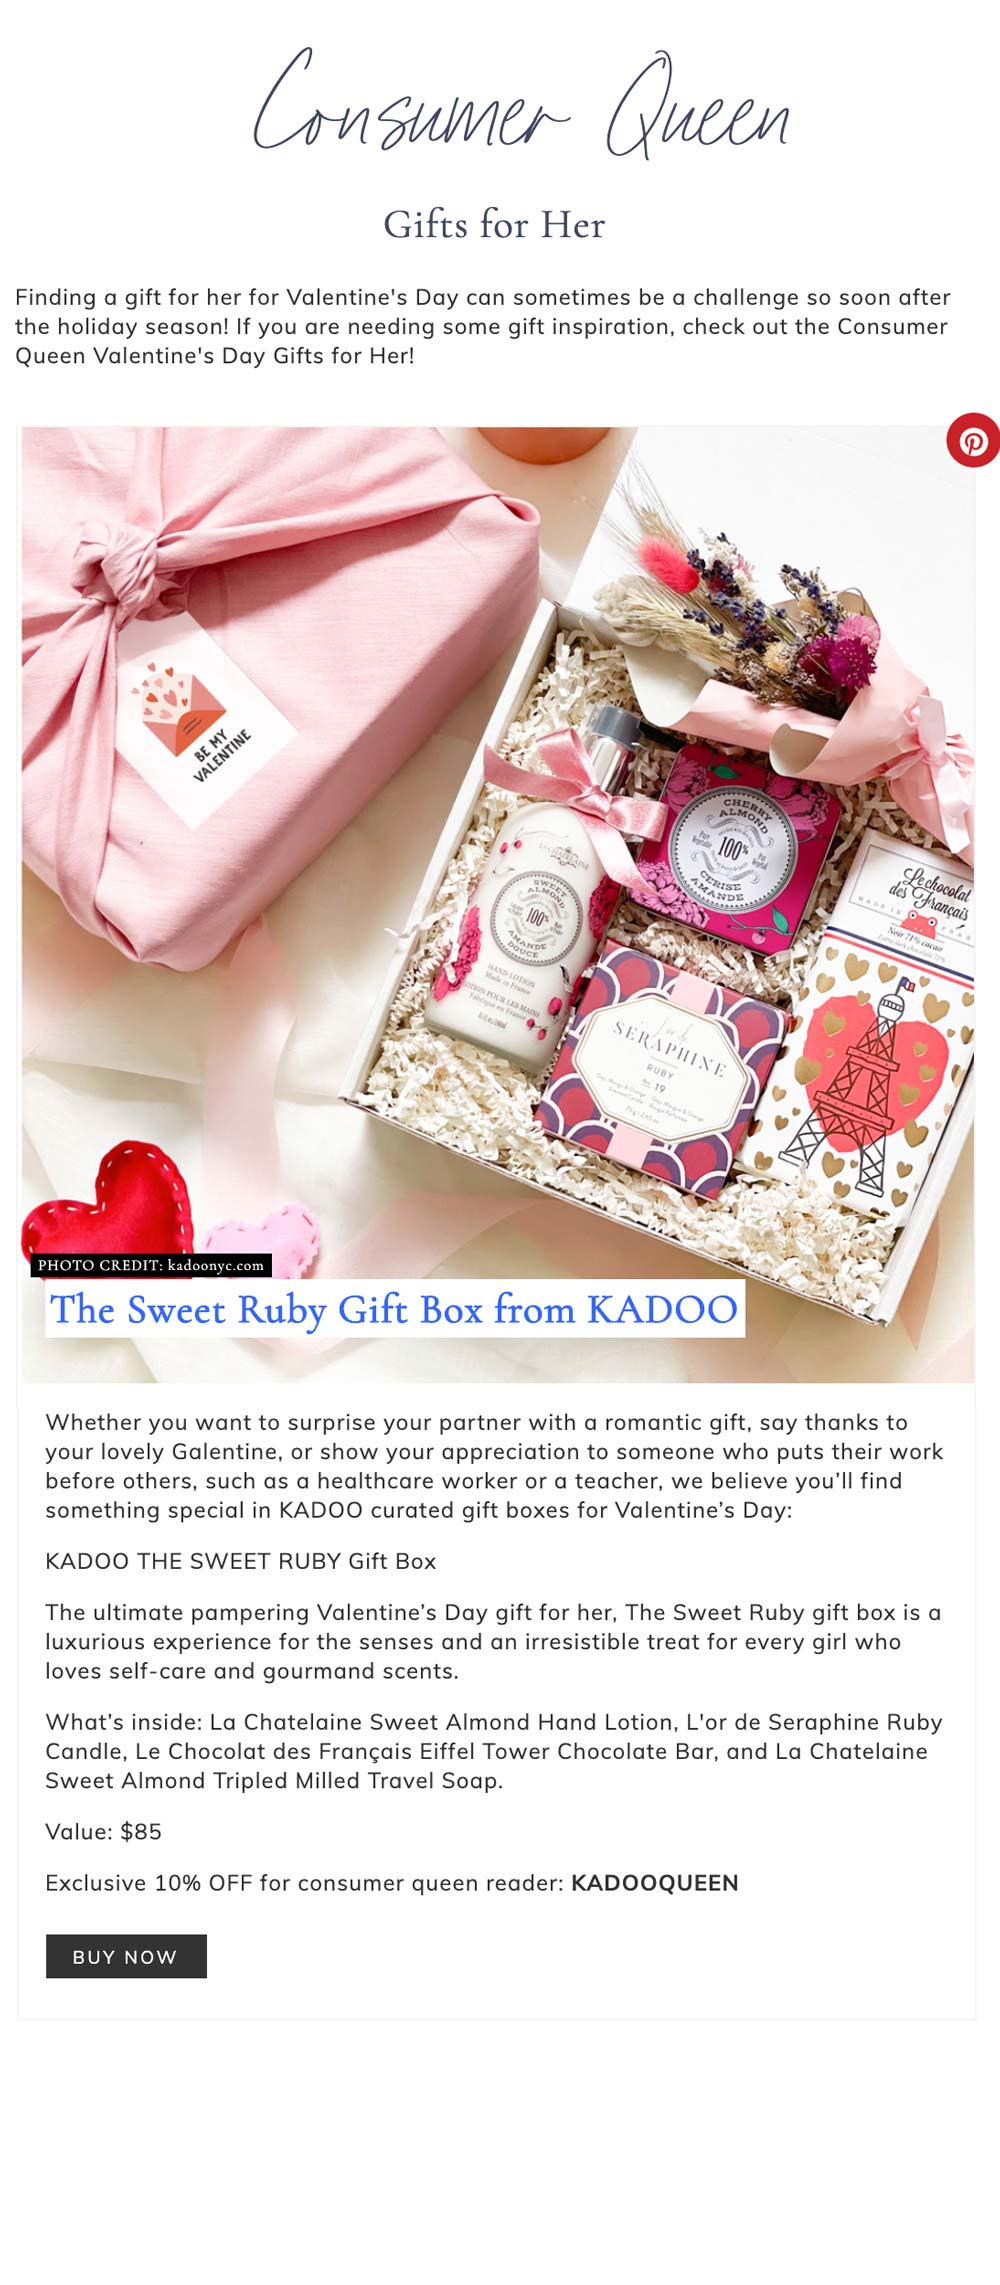 kadoo consumer queen valentine gift guide gift for her